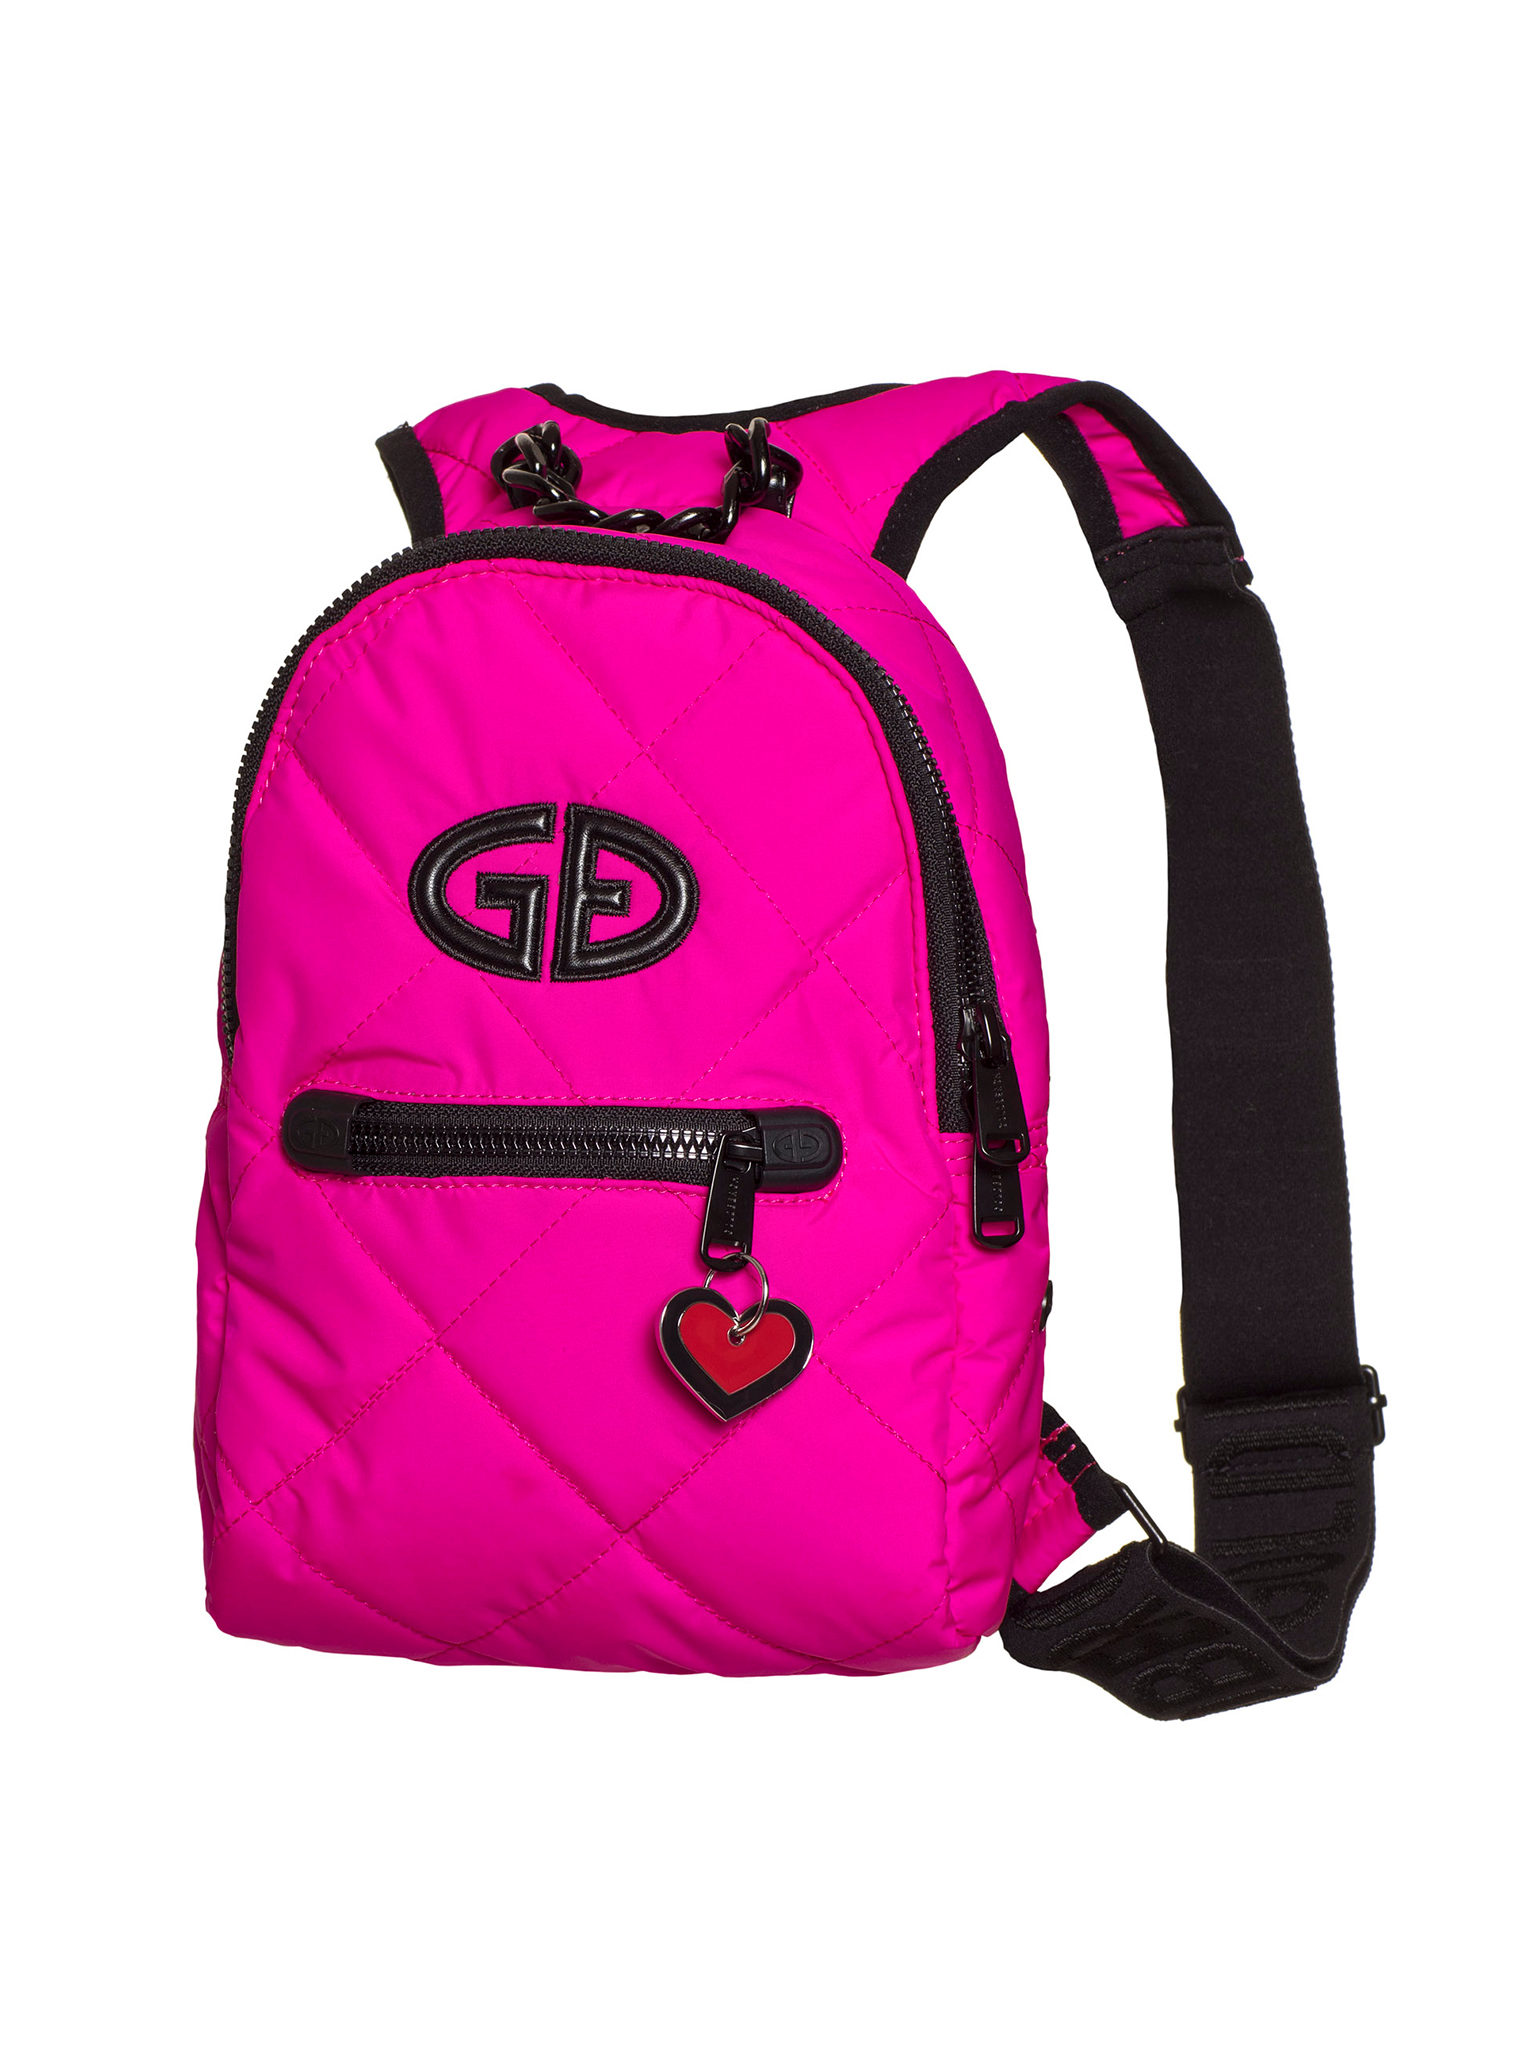 Luxury travel bags for women skiers